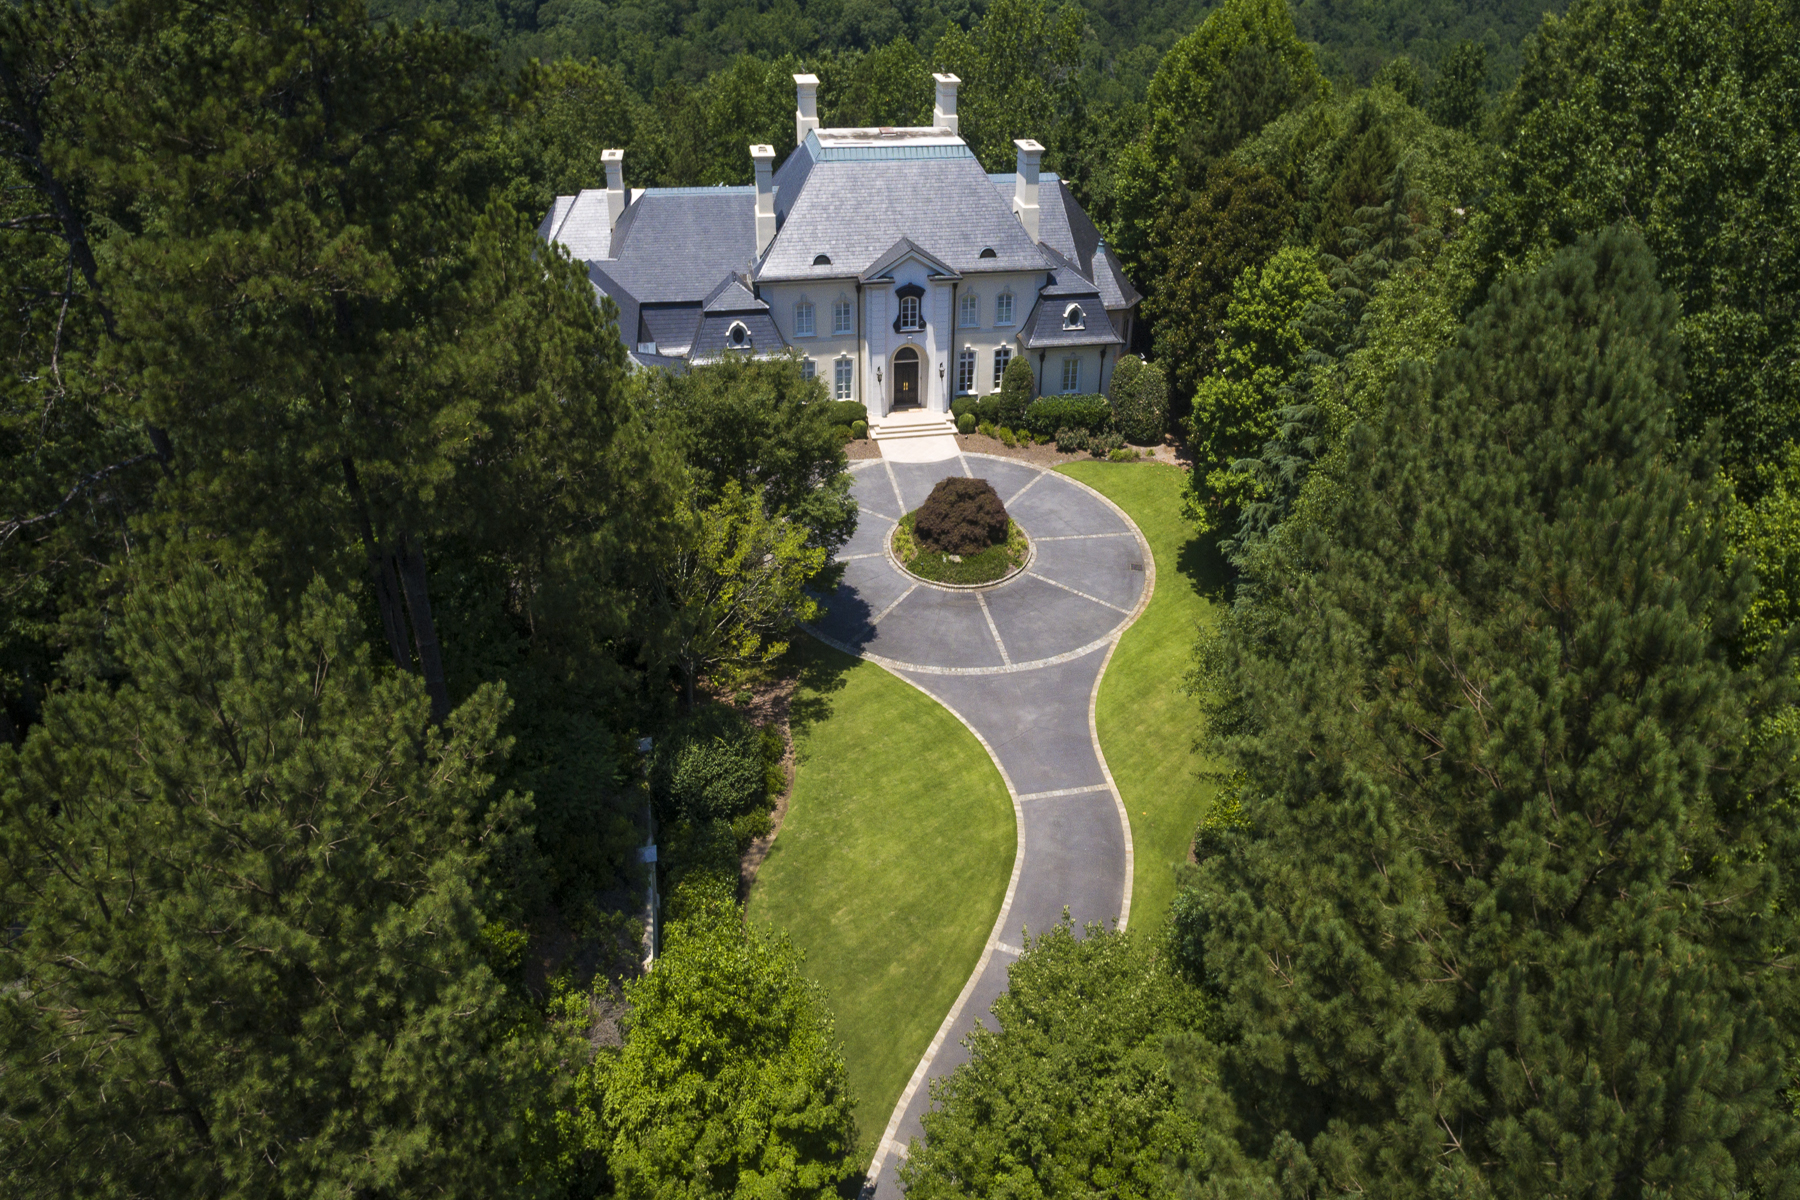 Casa para uma família para Venda às Fabulous Entertaining Home On Three Acres In Premier Guard Gated Community 125 Wilderbluff Court Sandy Springs, Geórgia, 30328 Estados Unidos